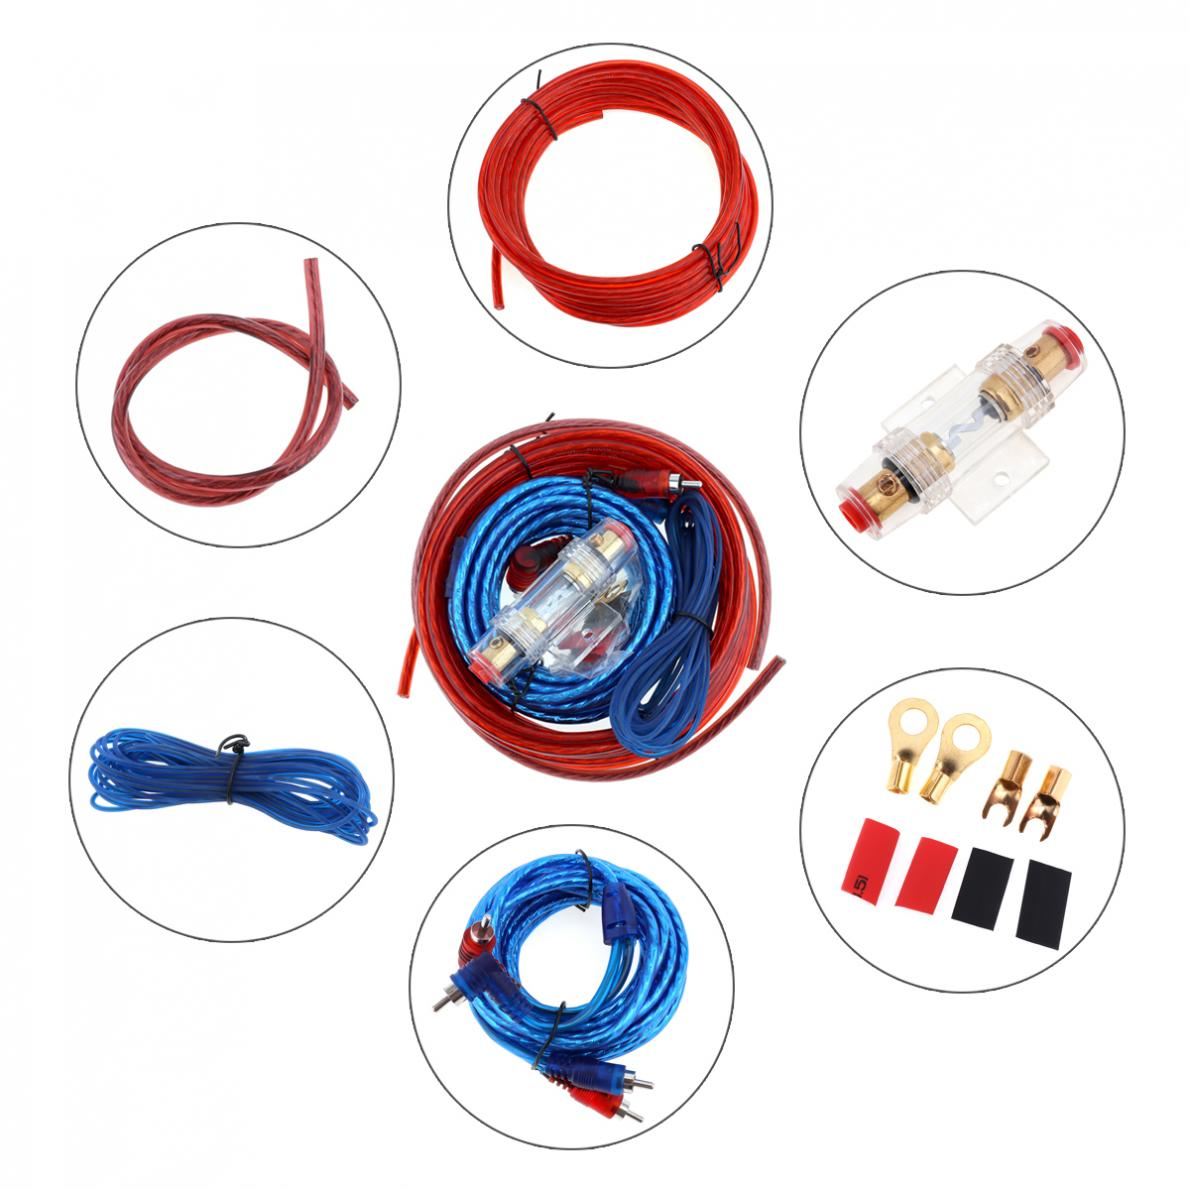 medium resolution of car auto audio power amplifier car subwoofer speaker installation wiring kits cables car audio line power